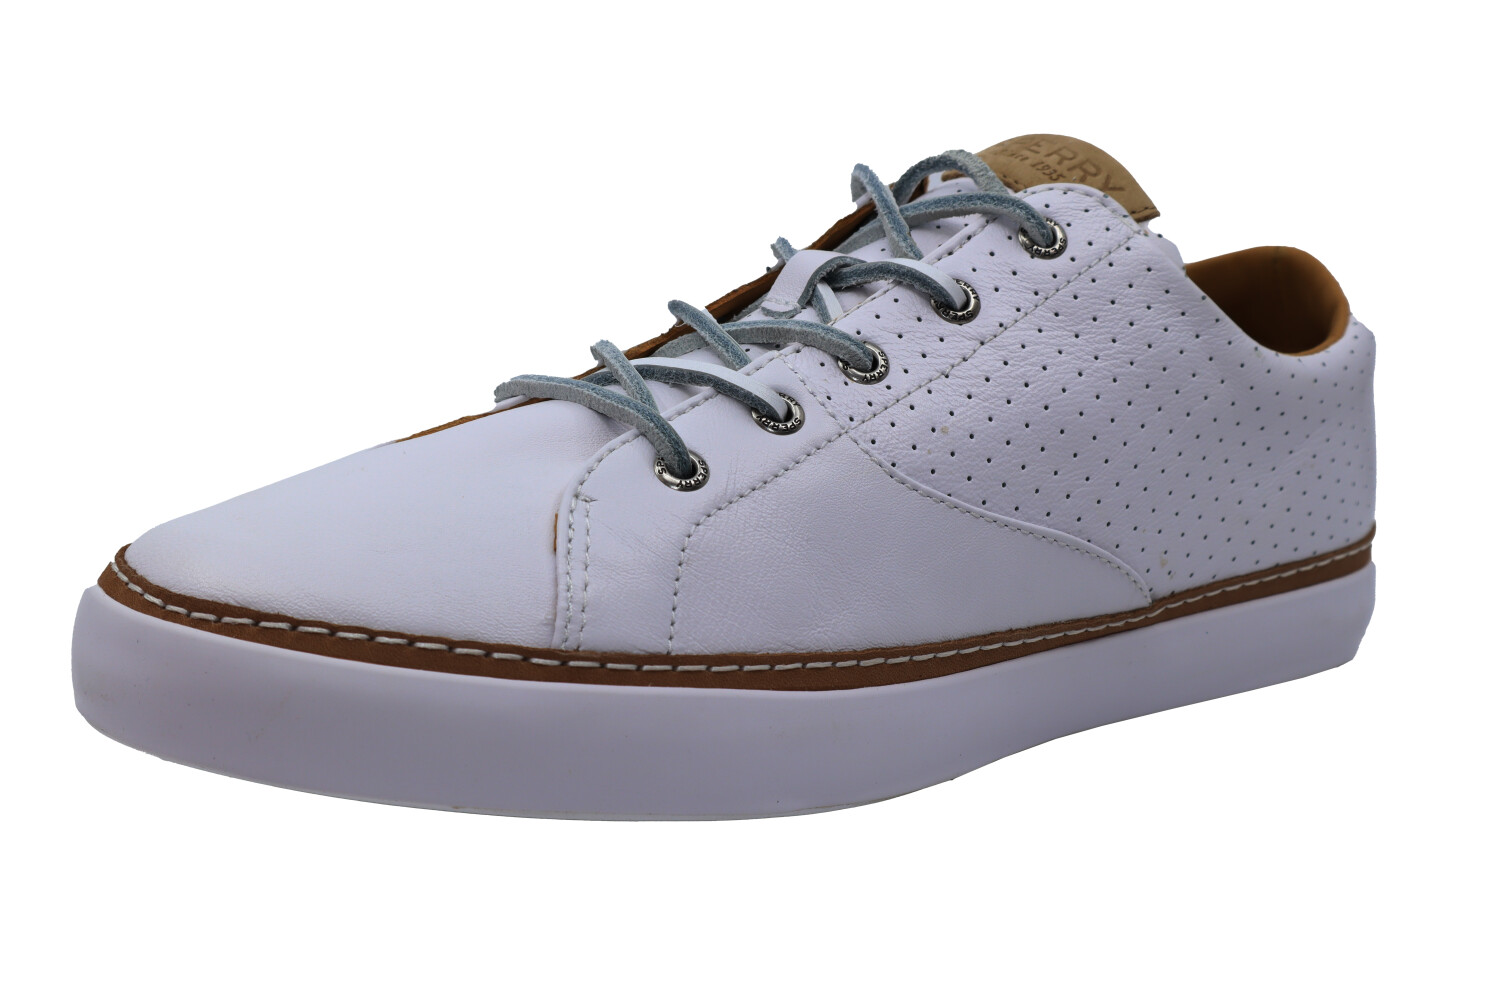 Sperry Men's Gold Cup Haven White Ankle-High Leather Sneaker - 7M